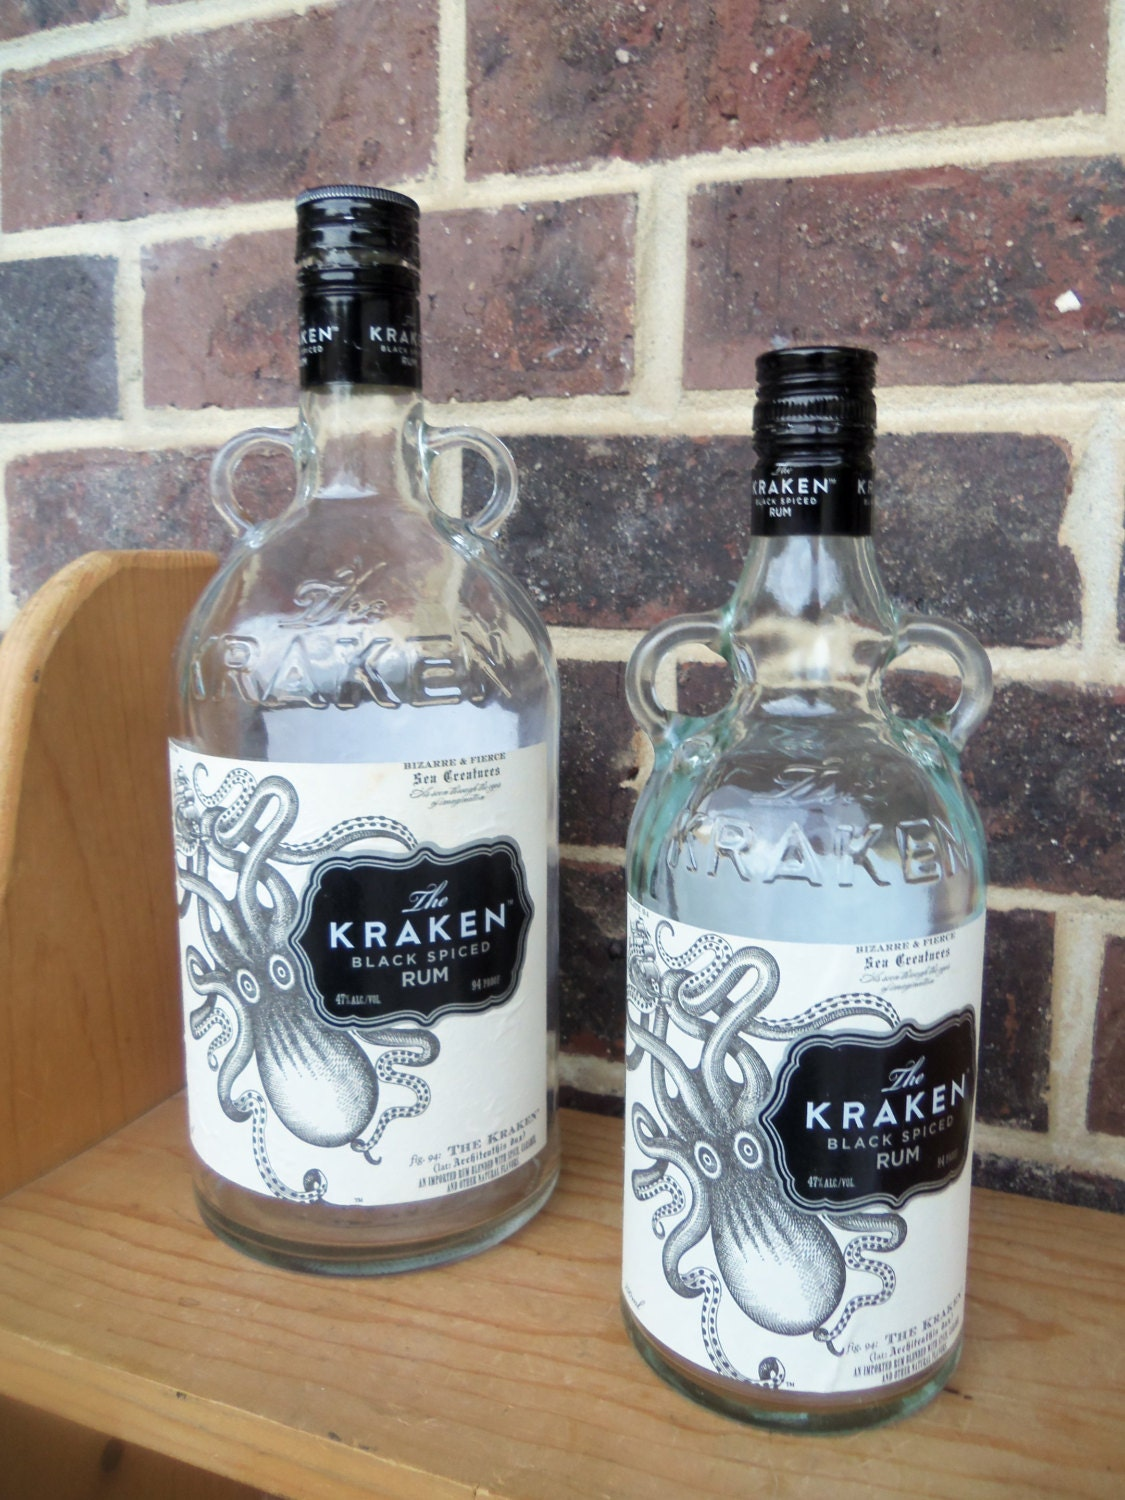 Empty Bottles The Kraken Black Spiced Rum Octopus By